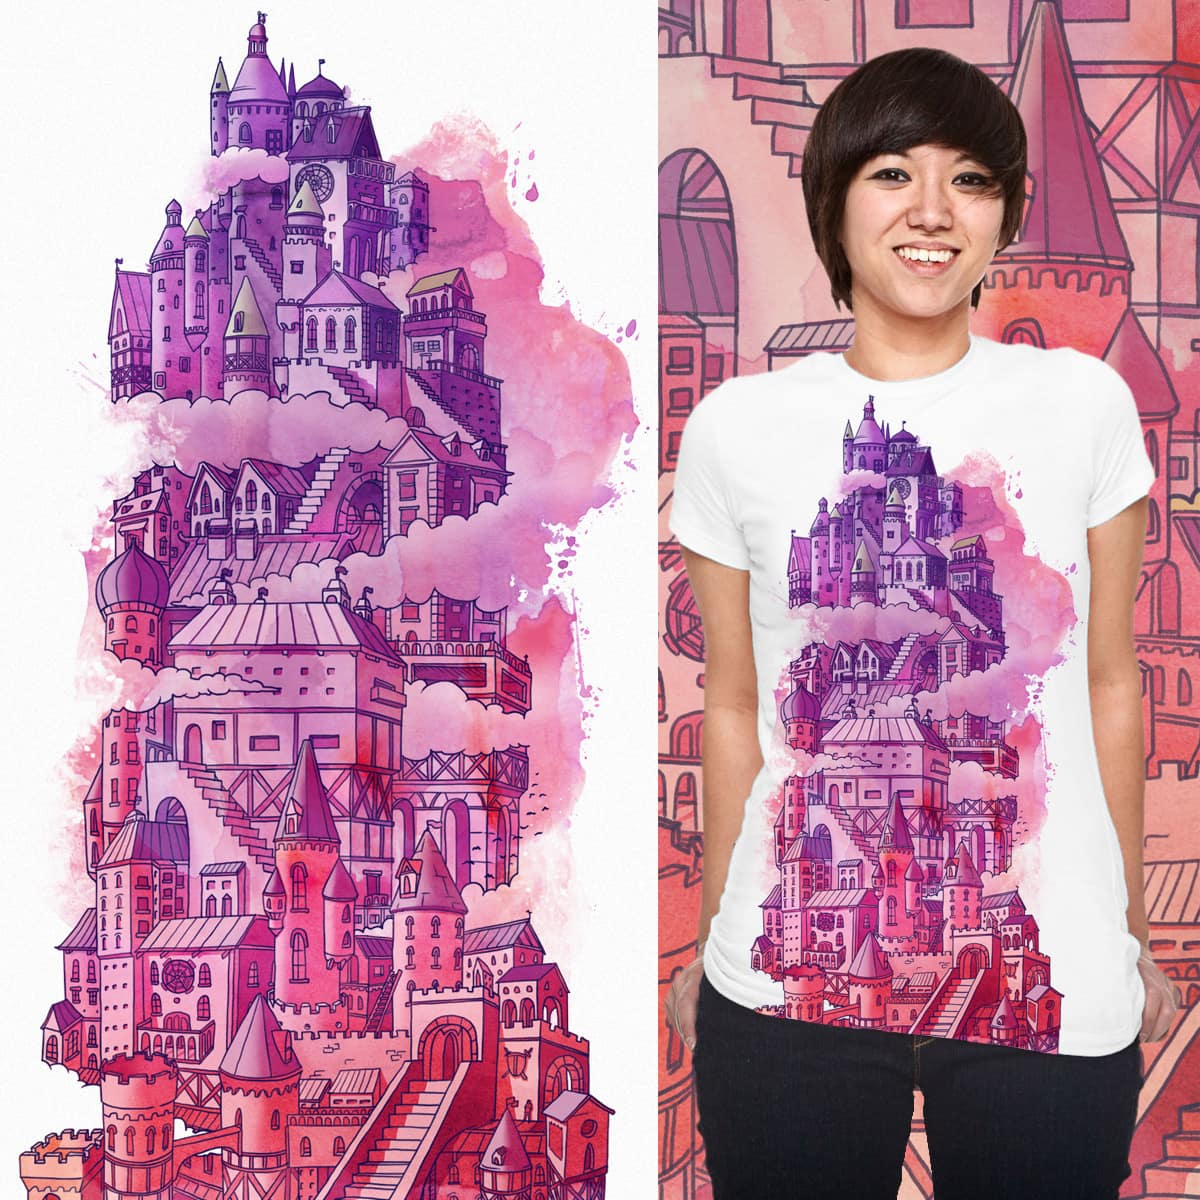 Cloud castle by Quequito on Threadless